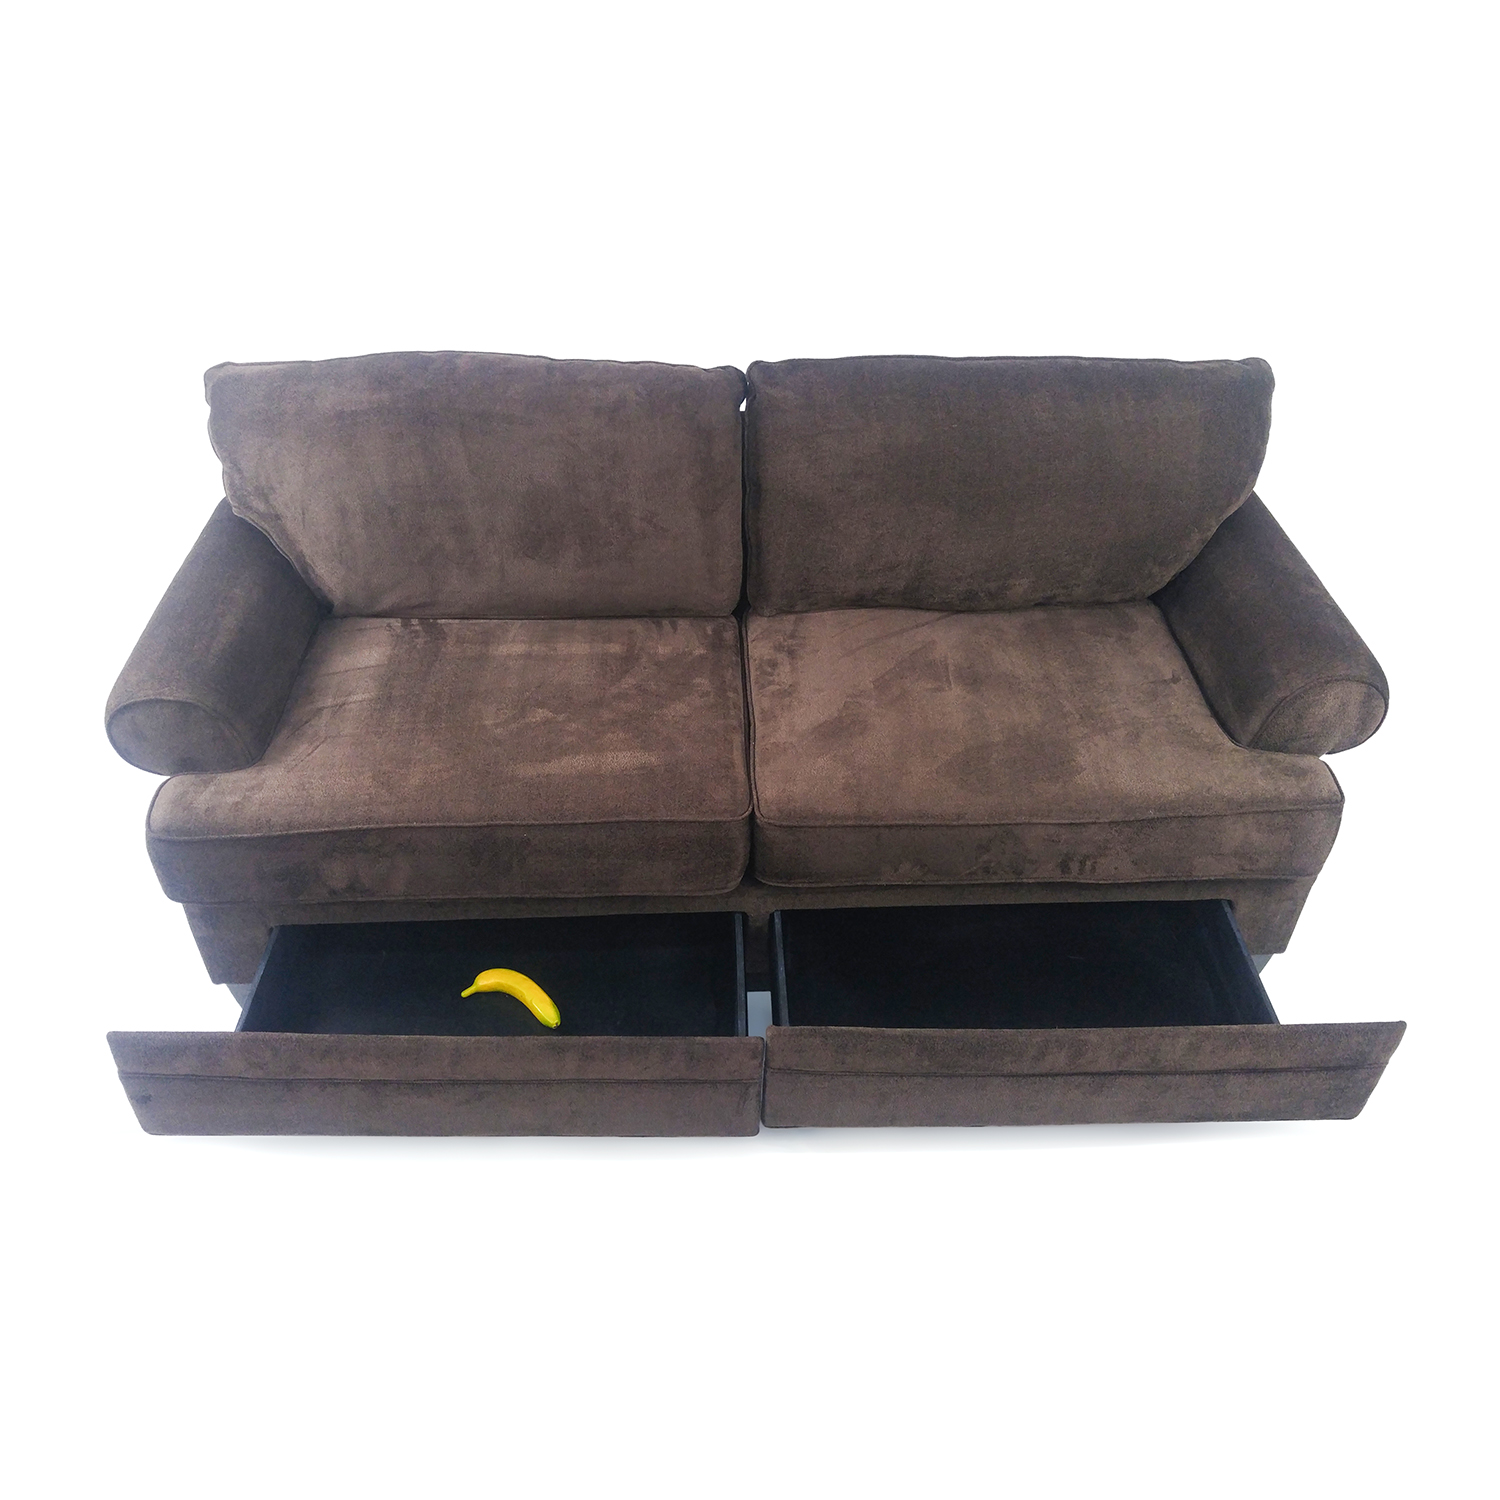 Bobs furniture sofa bed lizzie chaise bobu0027s discount for Bobs furniture chaise